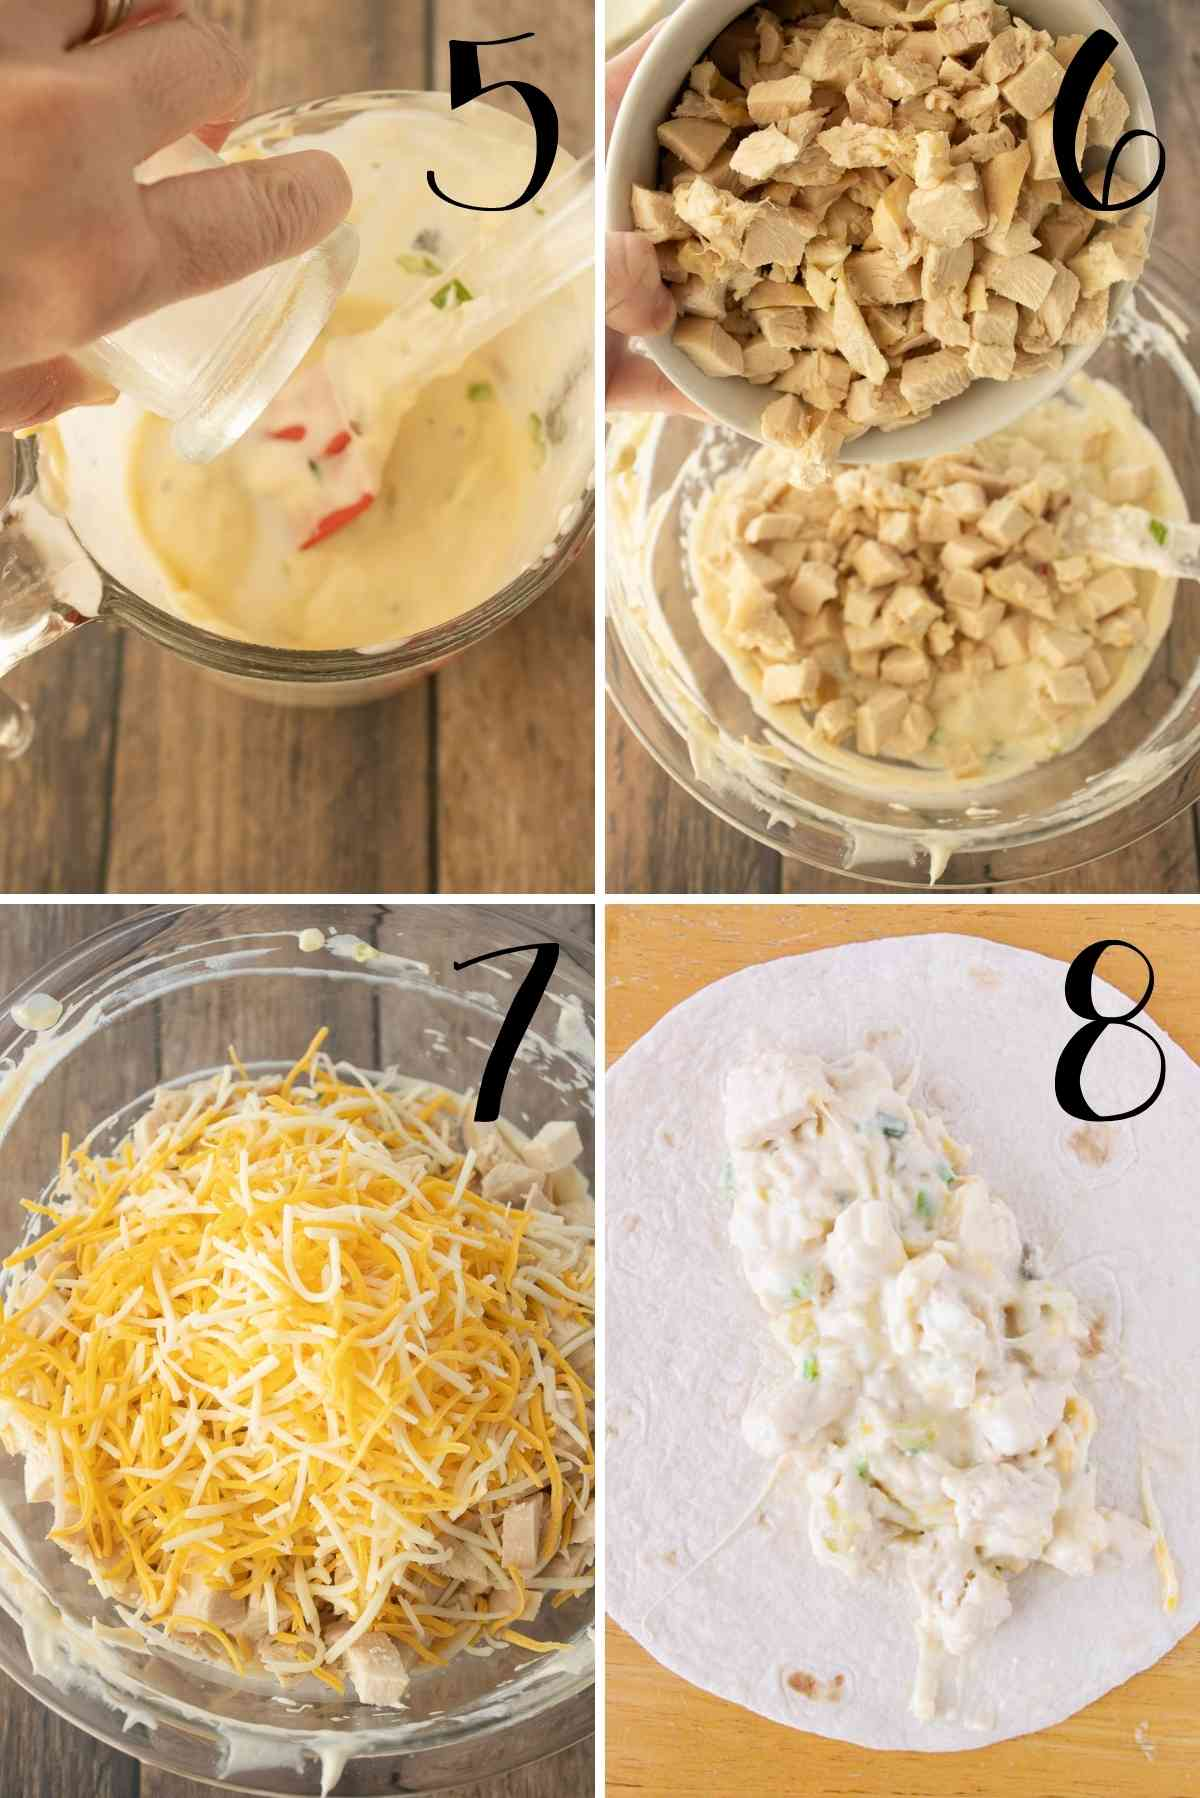 Mix and distribute the chicken and cheese filling on the tortillas.